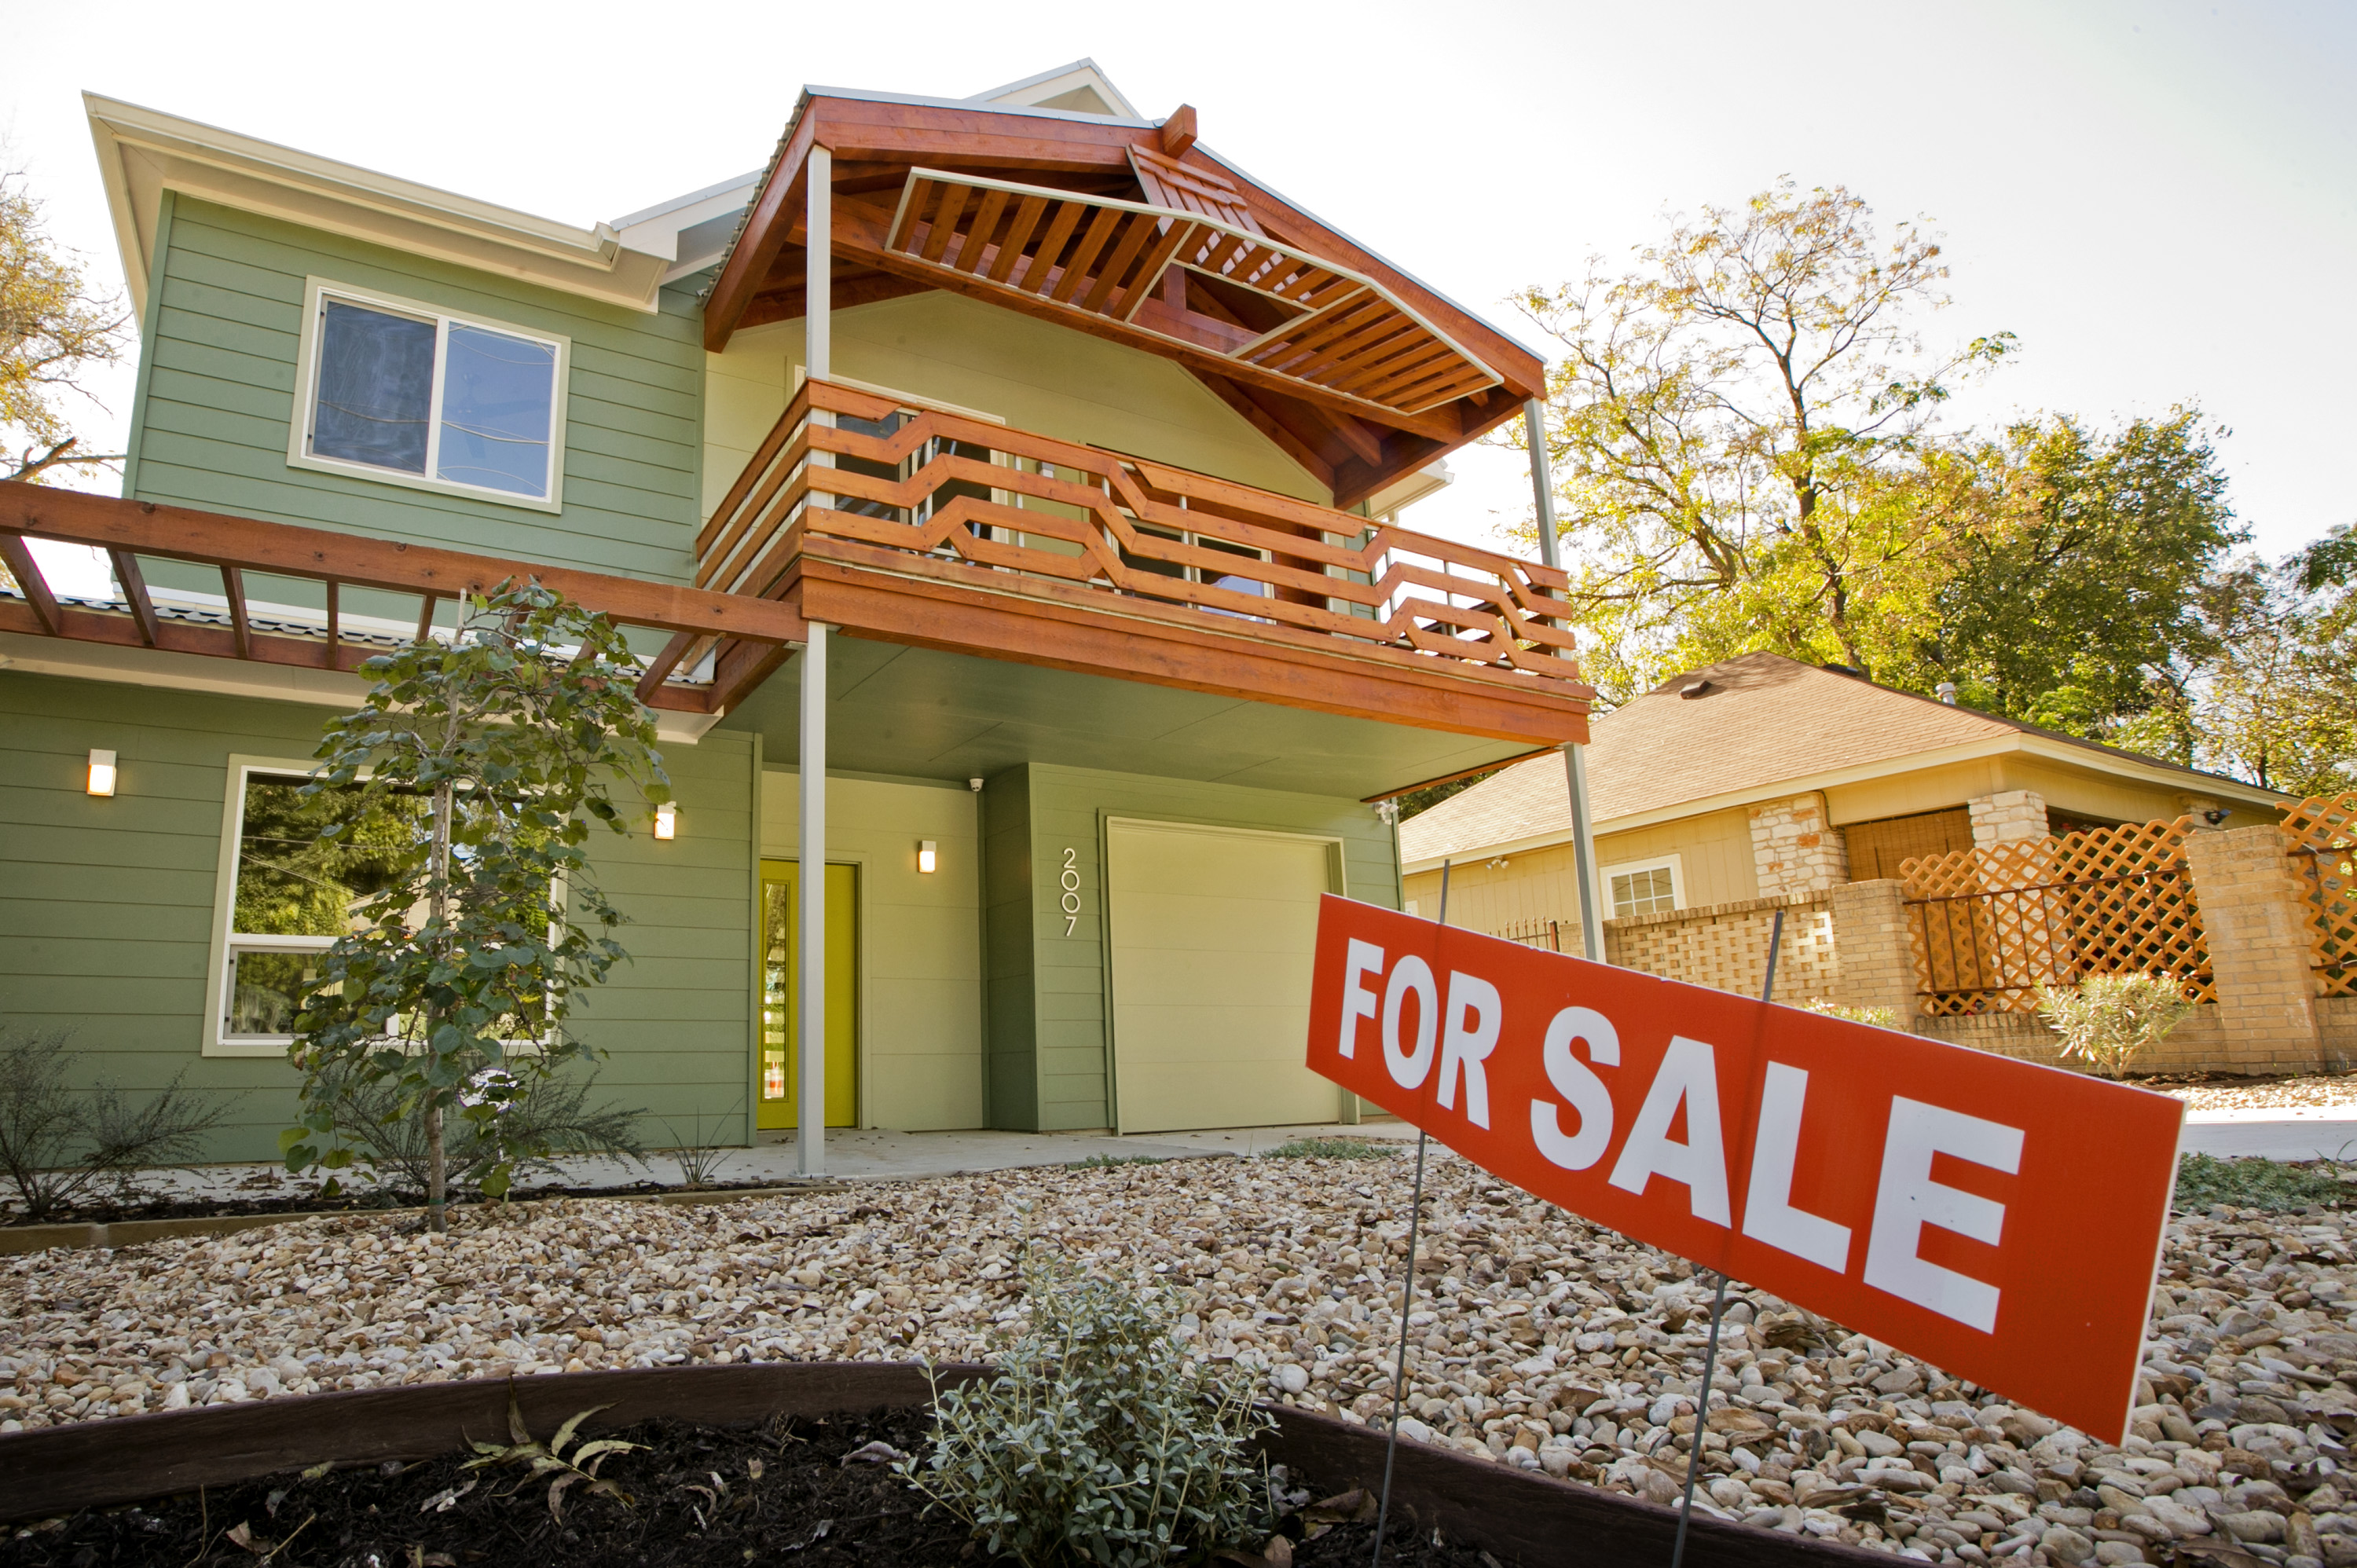 house, real estate, austin, texas, afford, expensive, housing, salary, pure gold realty